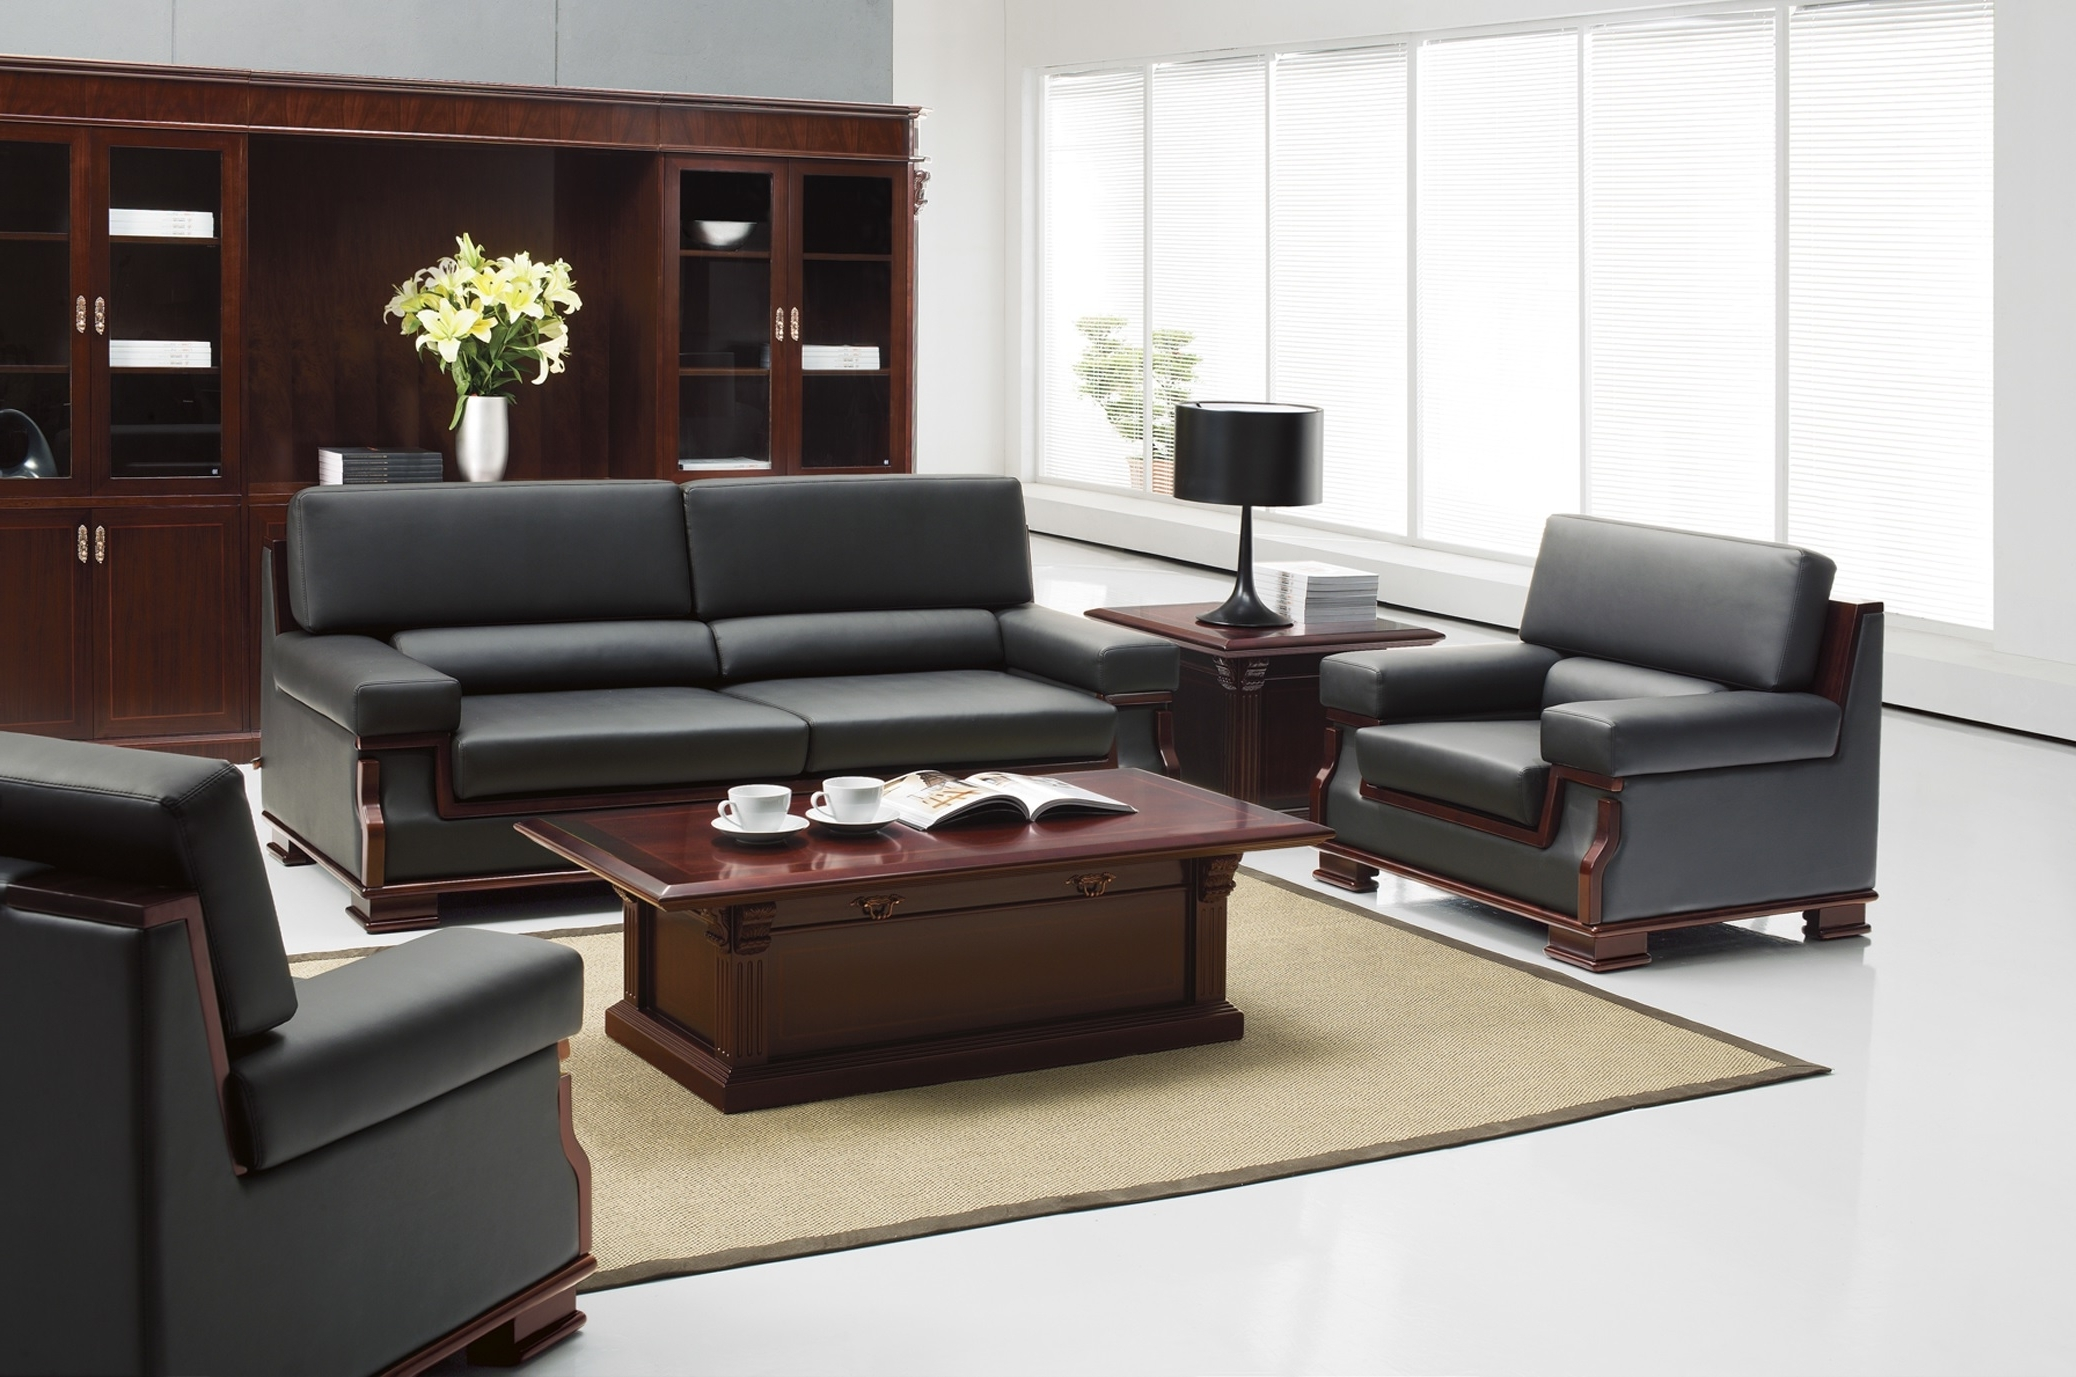 office sofas and chairs sofa table in french showing gallery of view 12 20 photos popular modern executive